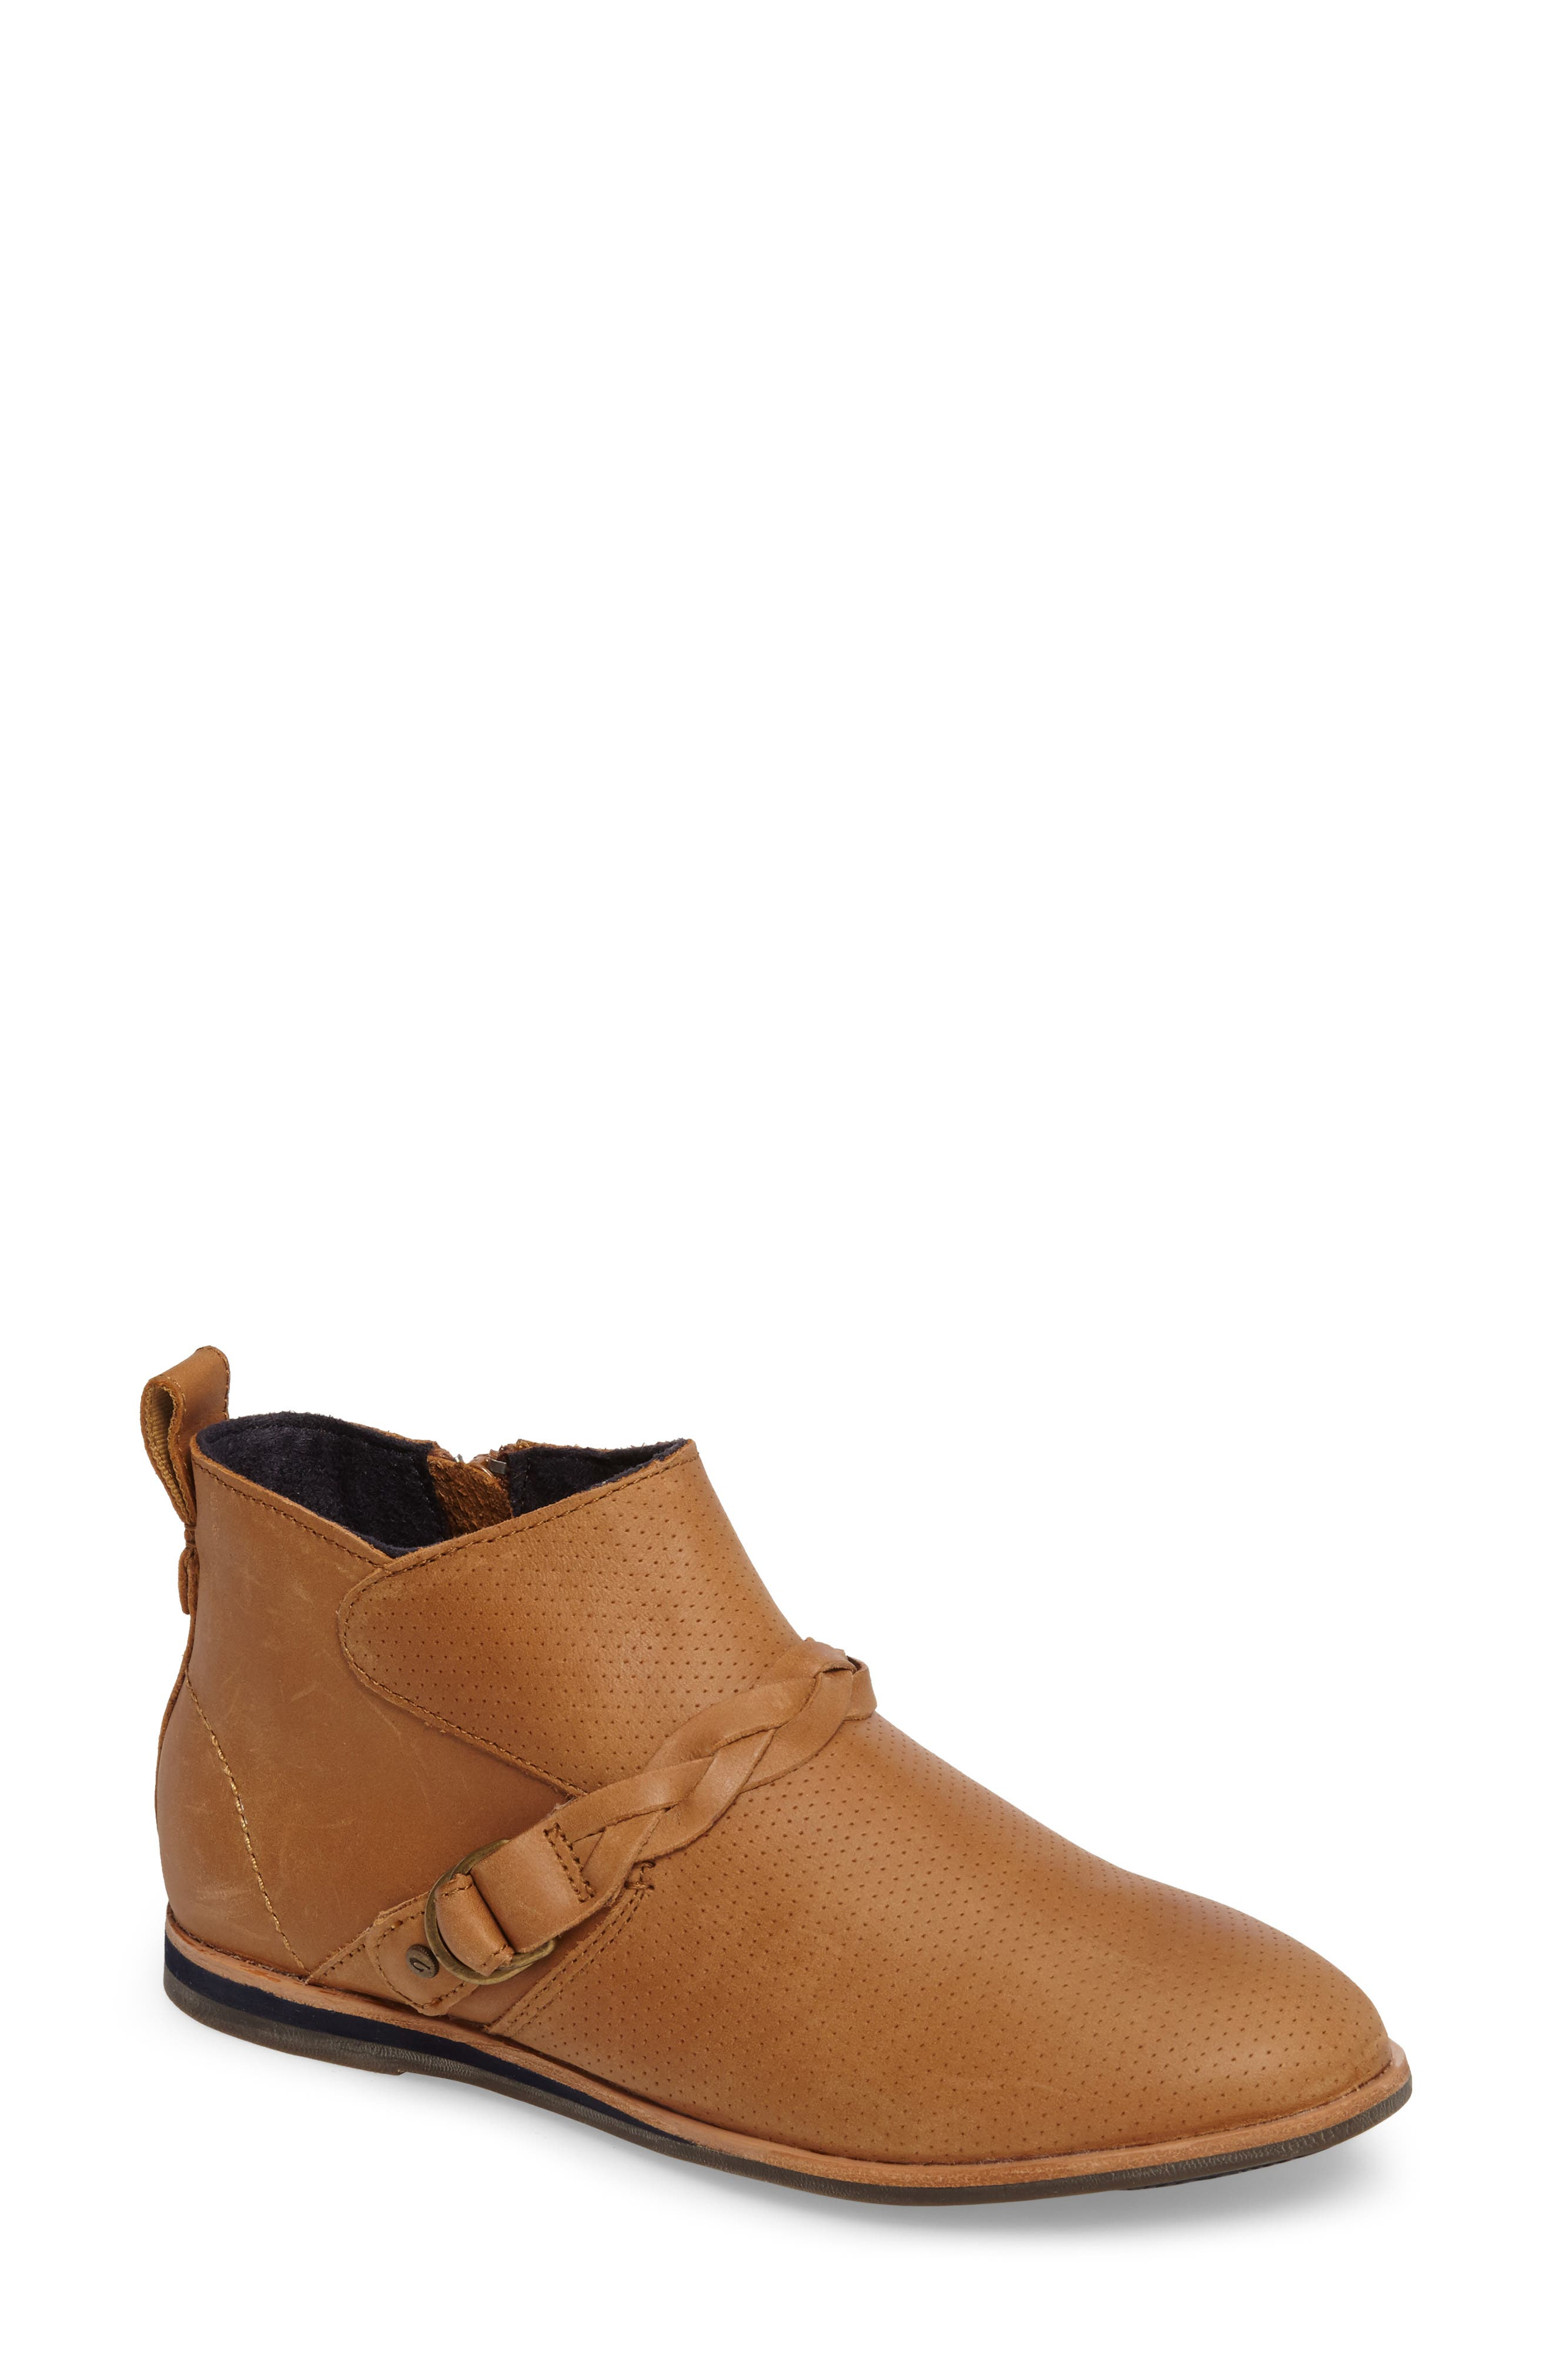 Ho'olu Perforated Bootie,                         Main,                         color, Pecan/ Pecan Leather